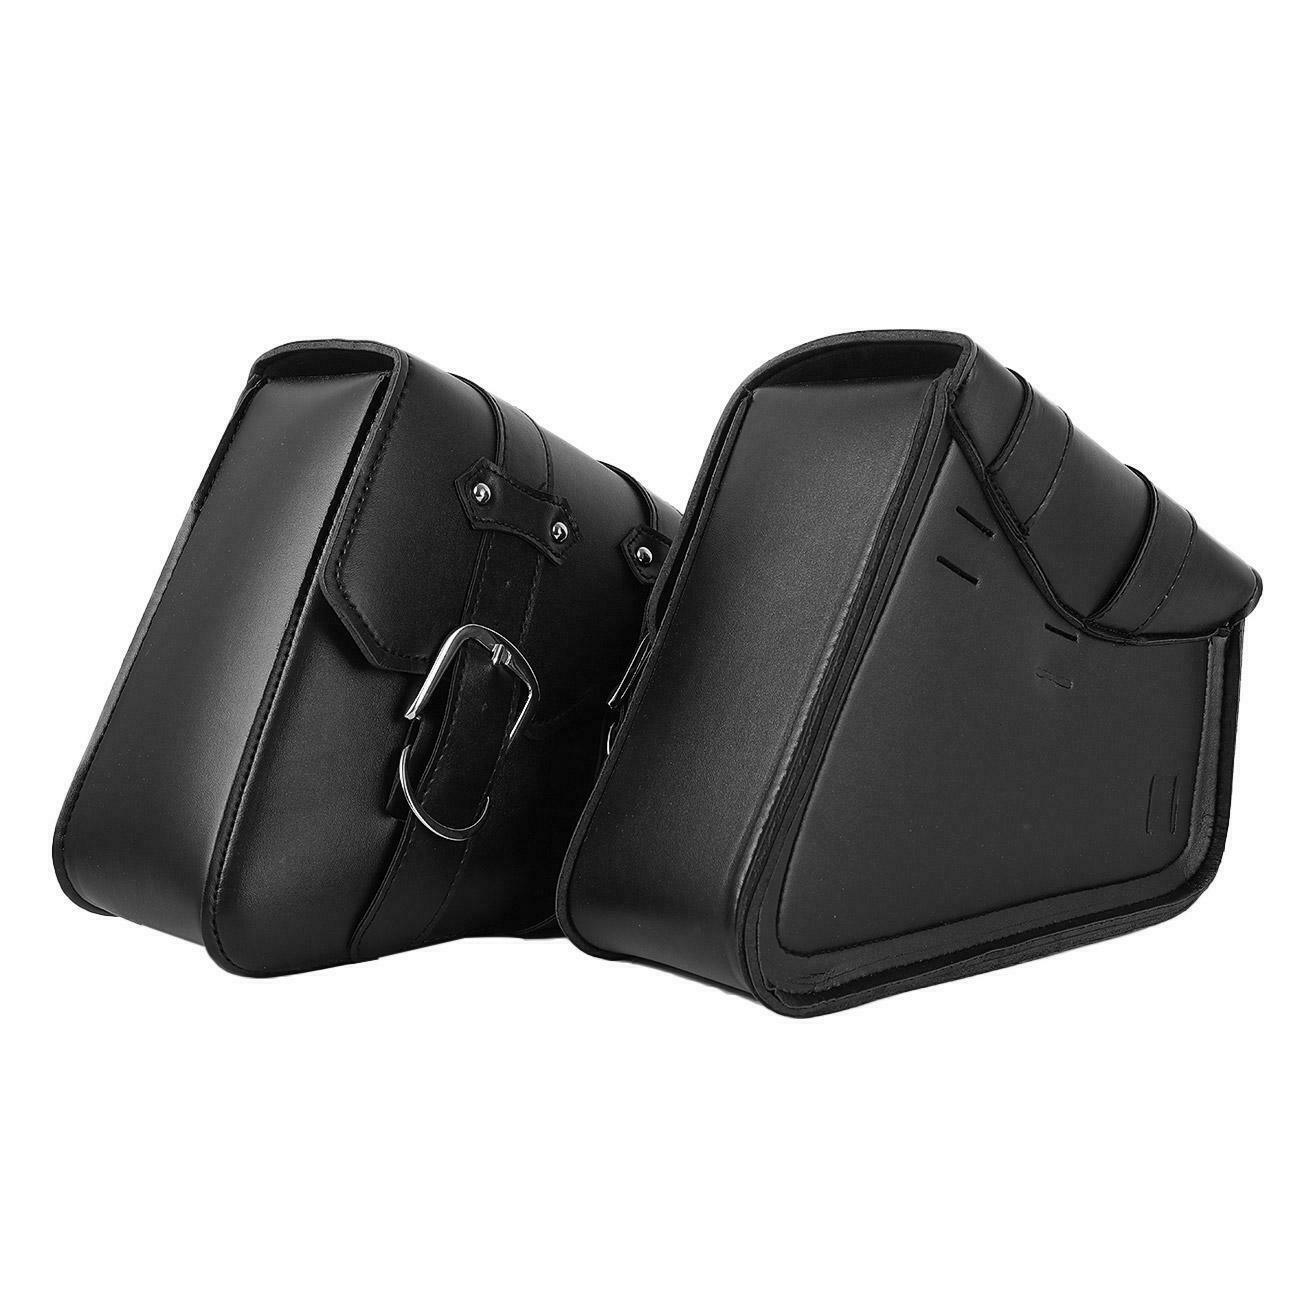 Black Motorcycle Saddle bag 2pcs Replace For Harley XL Sportster 1200 CustomBlack Motorcycle Saddle bag 2pcs Replace For Harley XL Sportster 1200 Custom